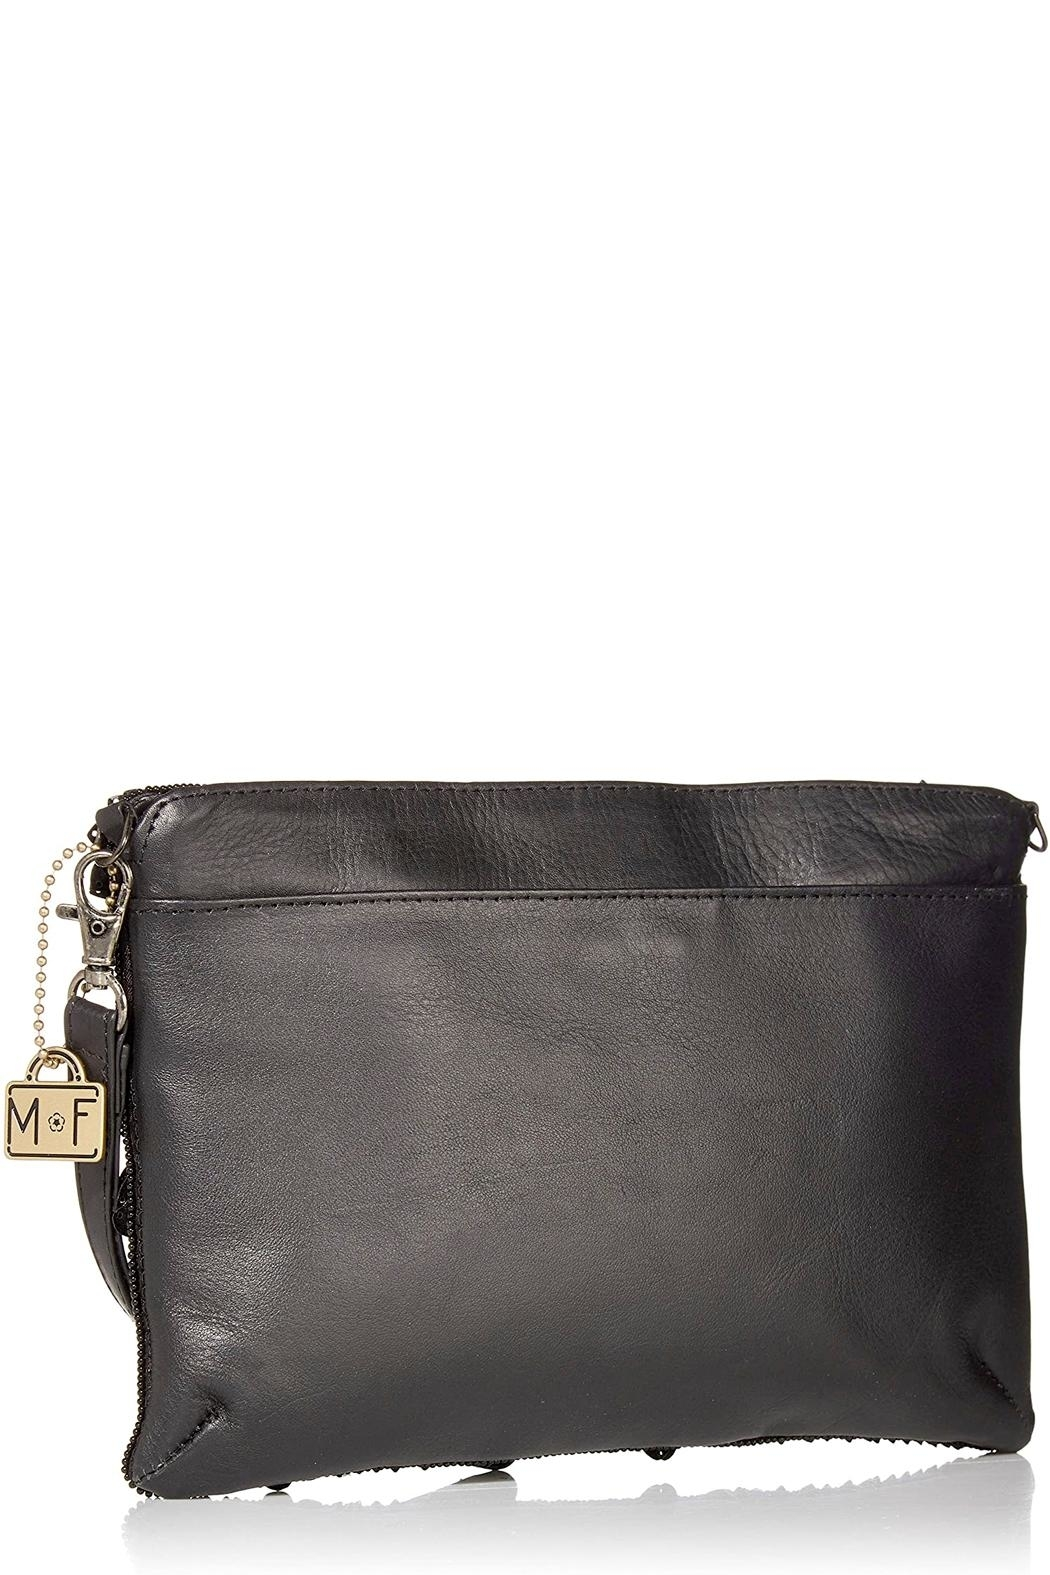 Mary Frances Floral Lux Crossbody-Clutch - Front Full Image